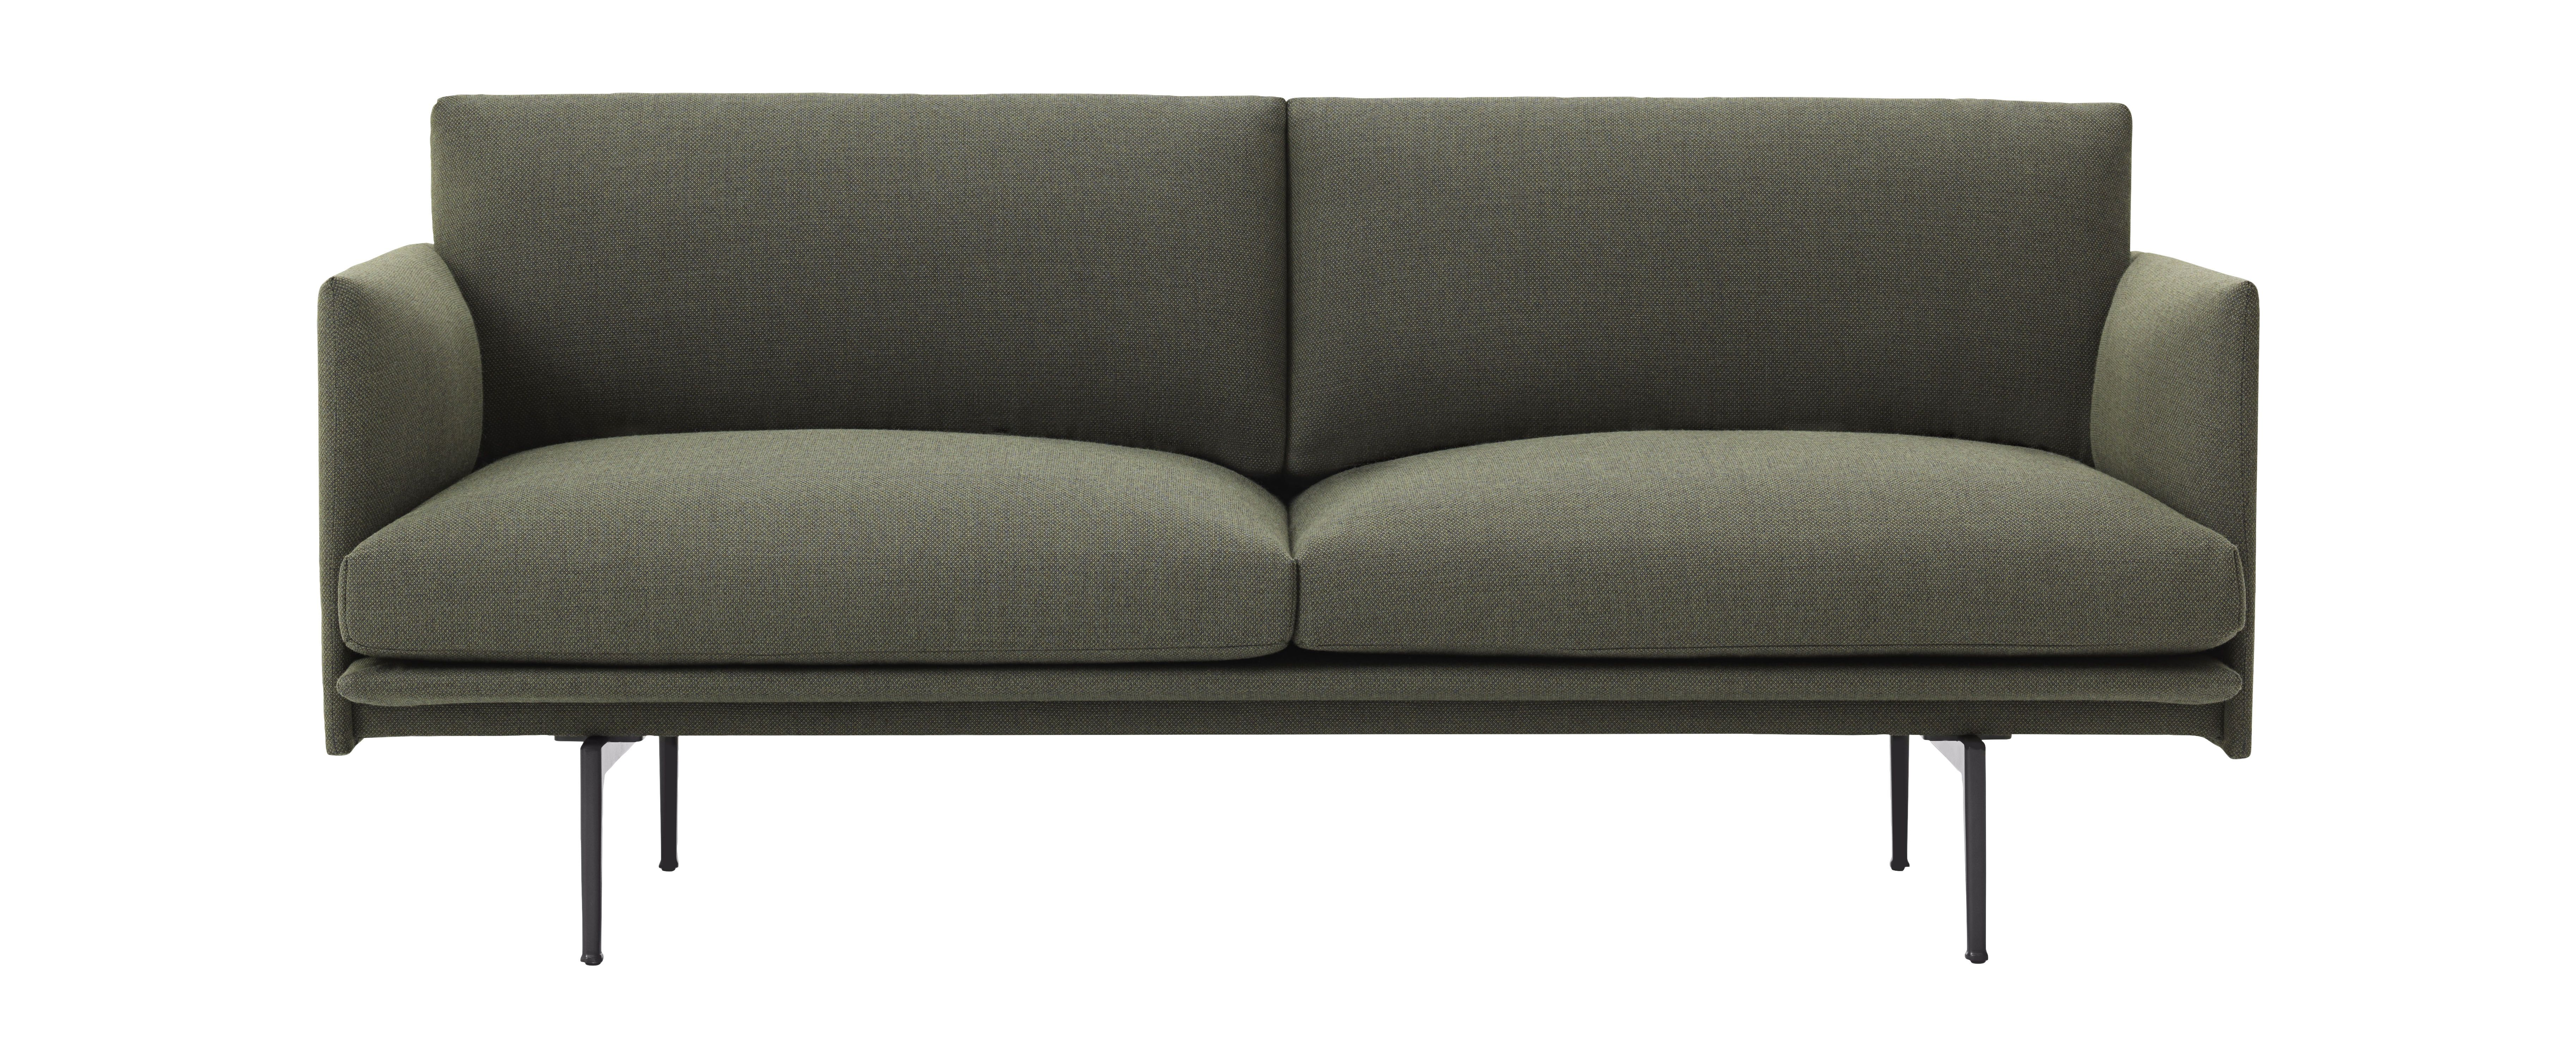 Canap 2 places outline l 170 cm tissu vert kaki - Canape made in design ...